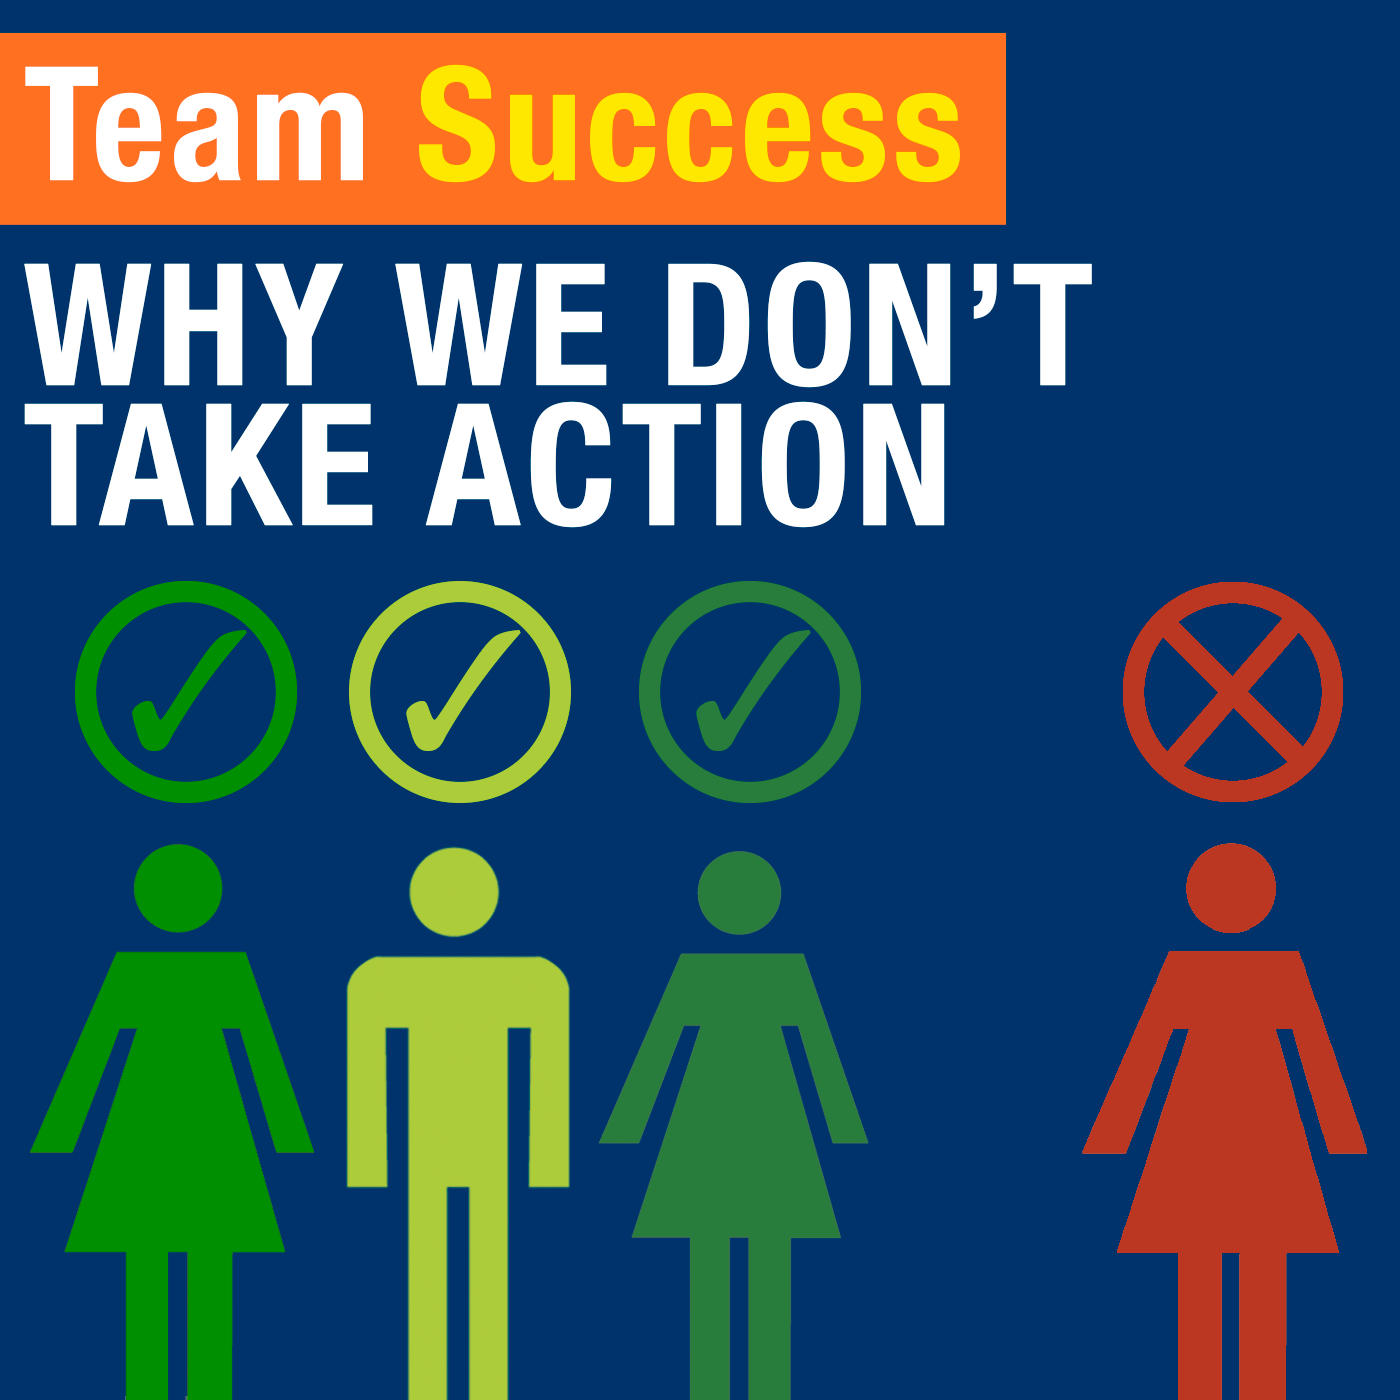 Why We Don't Take Action